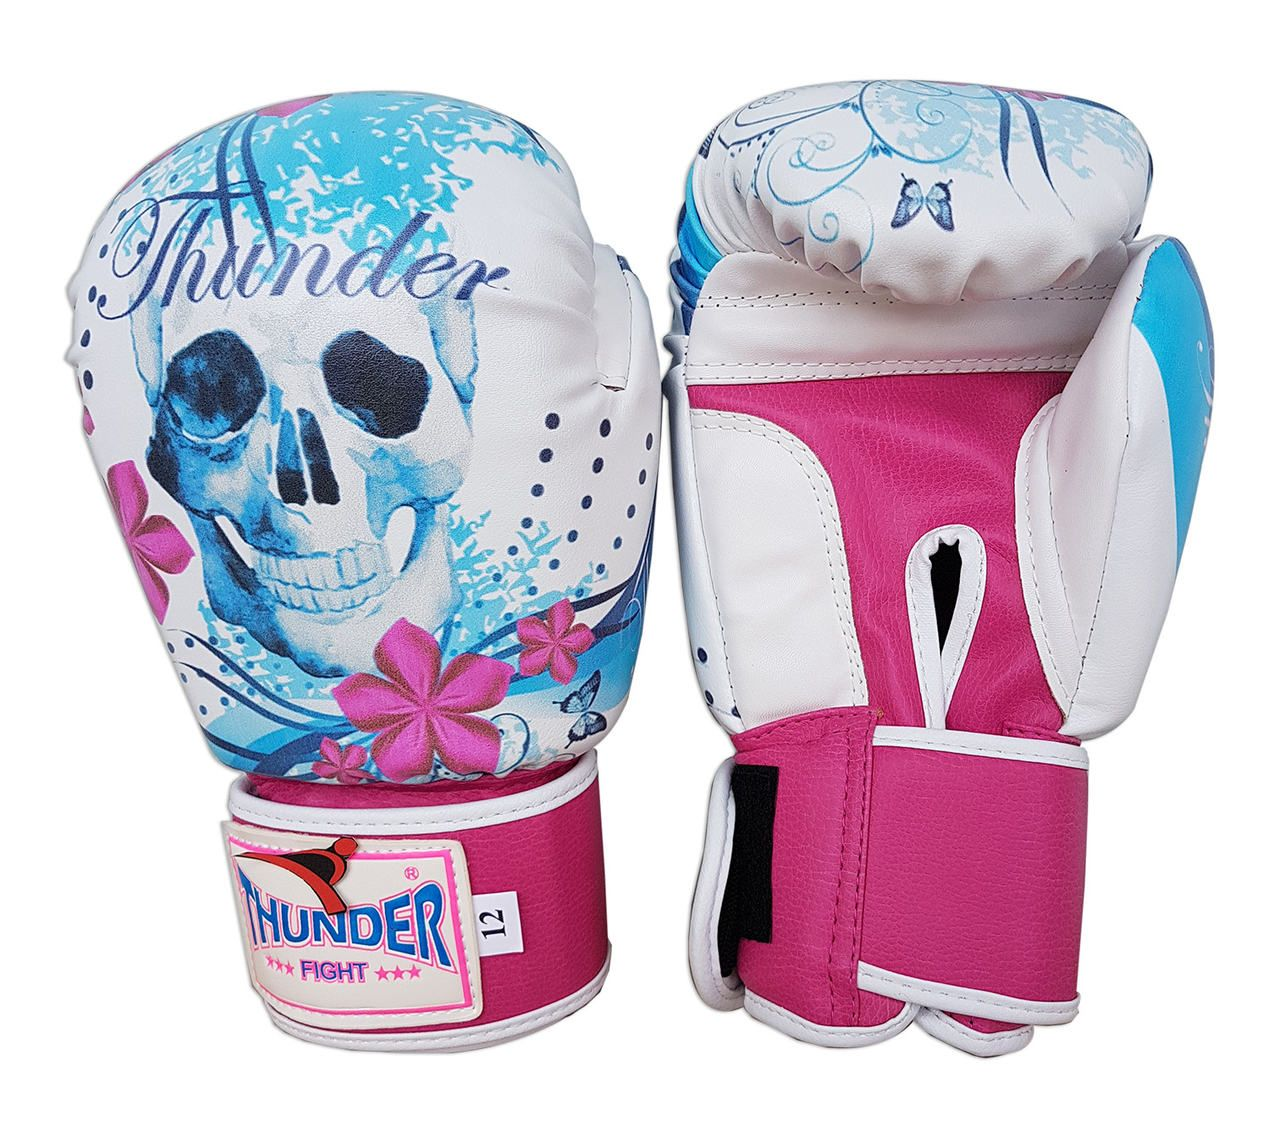 Kit de Muay Thai / Kickboxing Feminino 10oz - Caveira Azul com Rosa - Thunder Fight  - PRALUTA SHOP